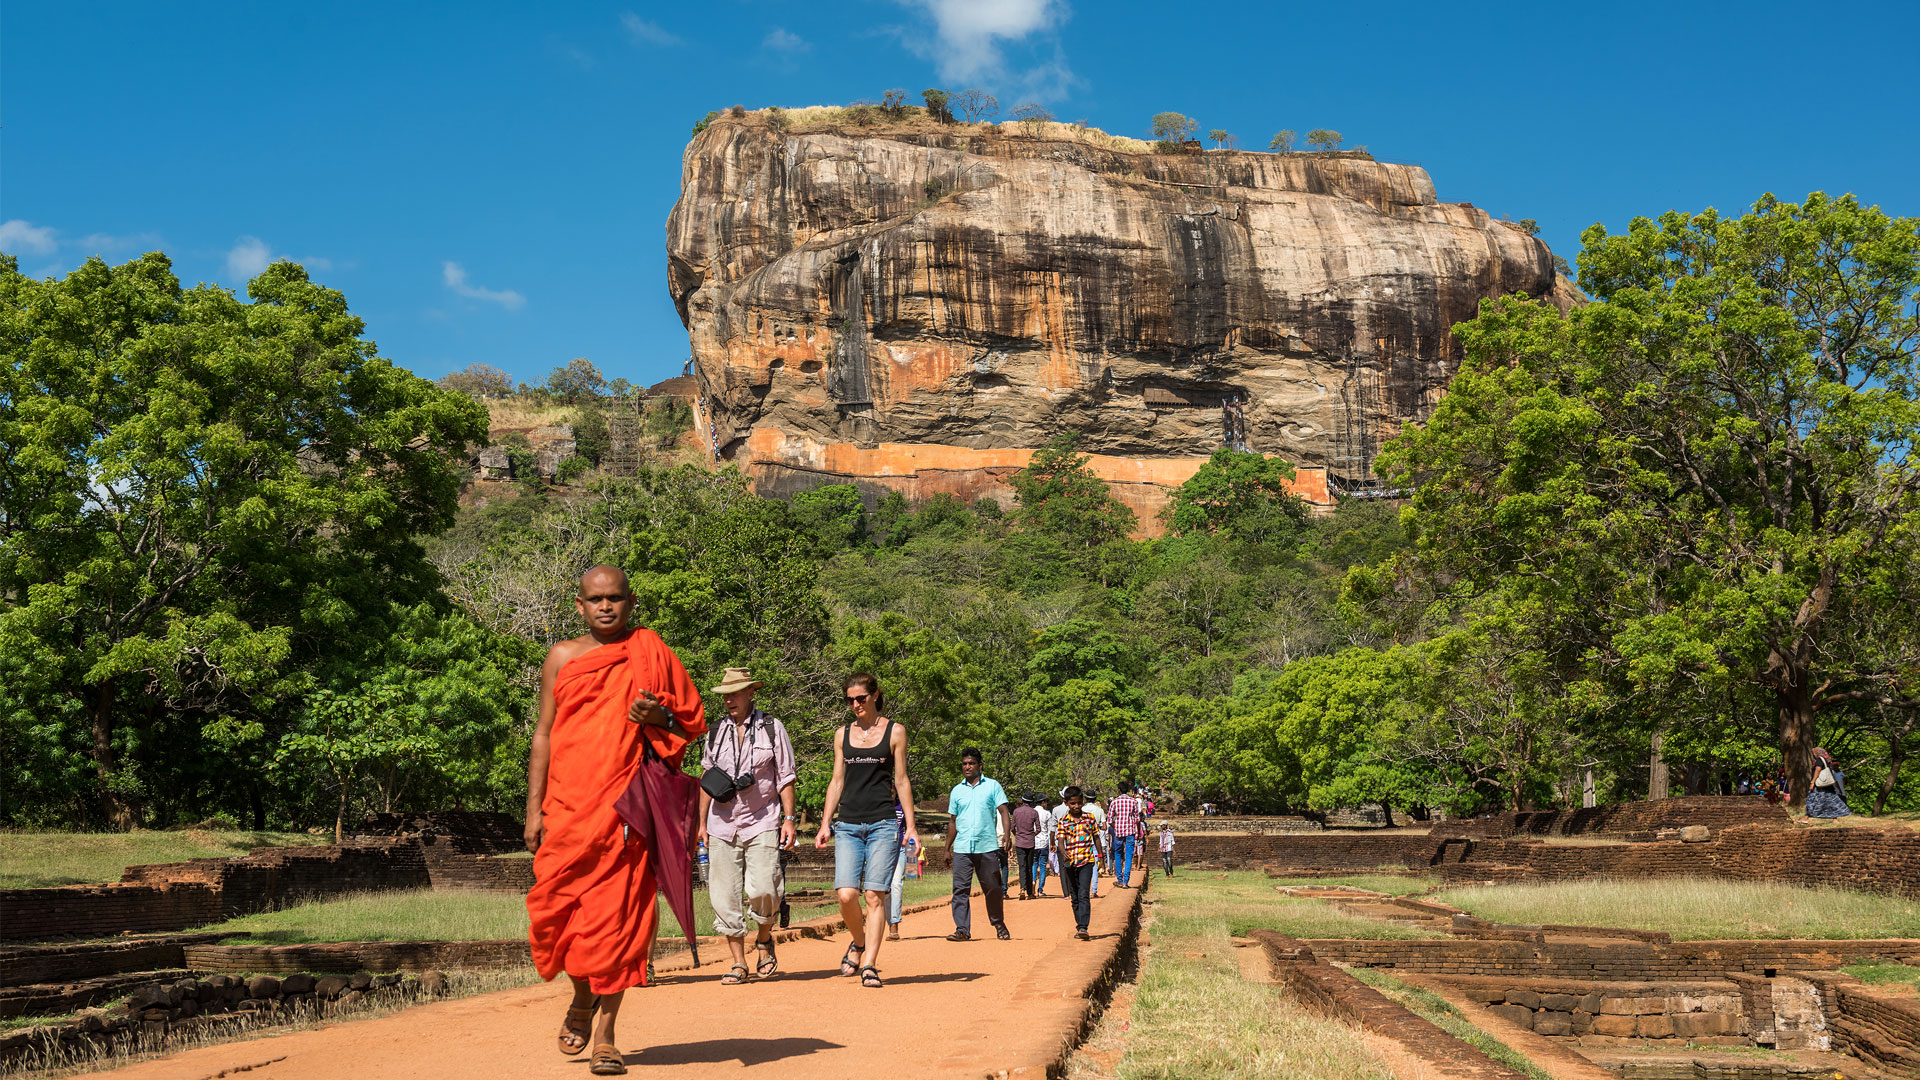 Sigiriya-lion-rock-fortress,-Sri-lanka